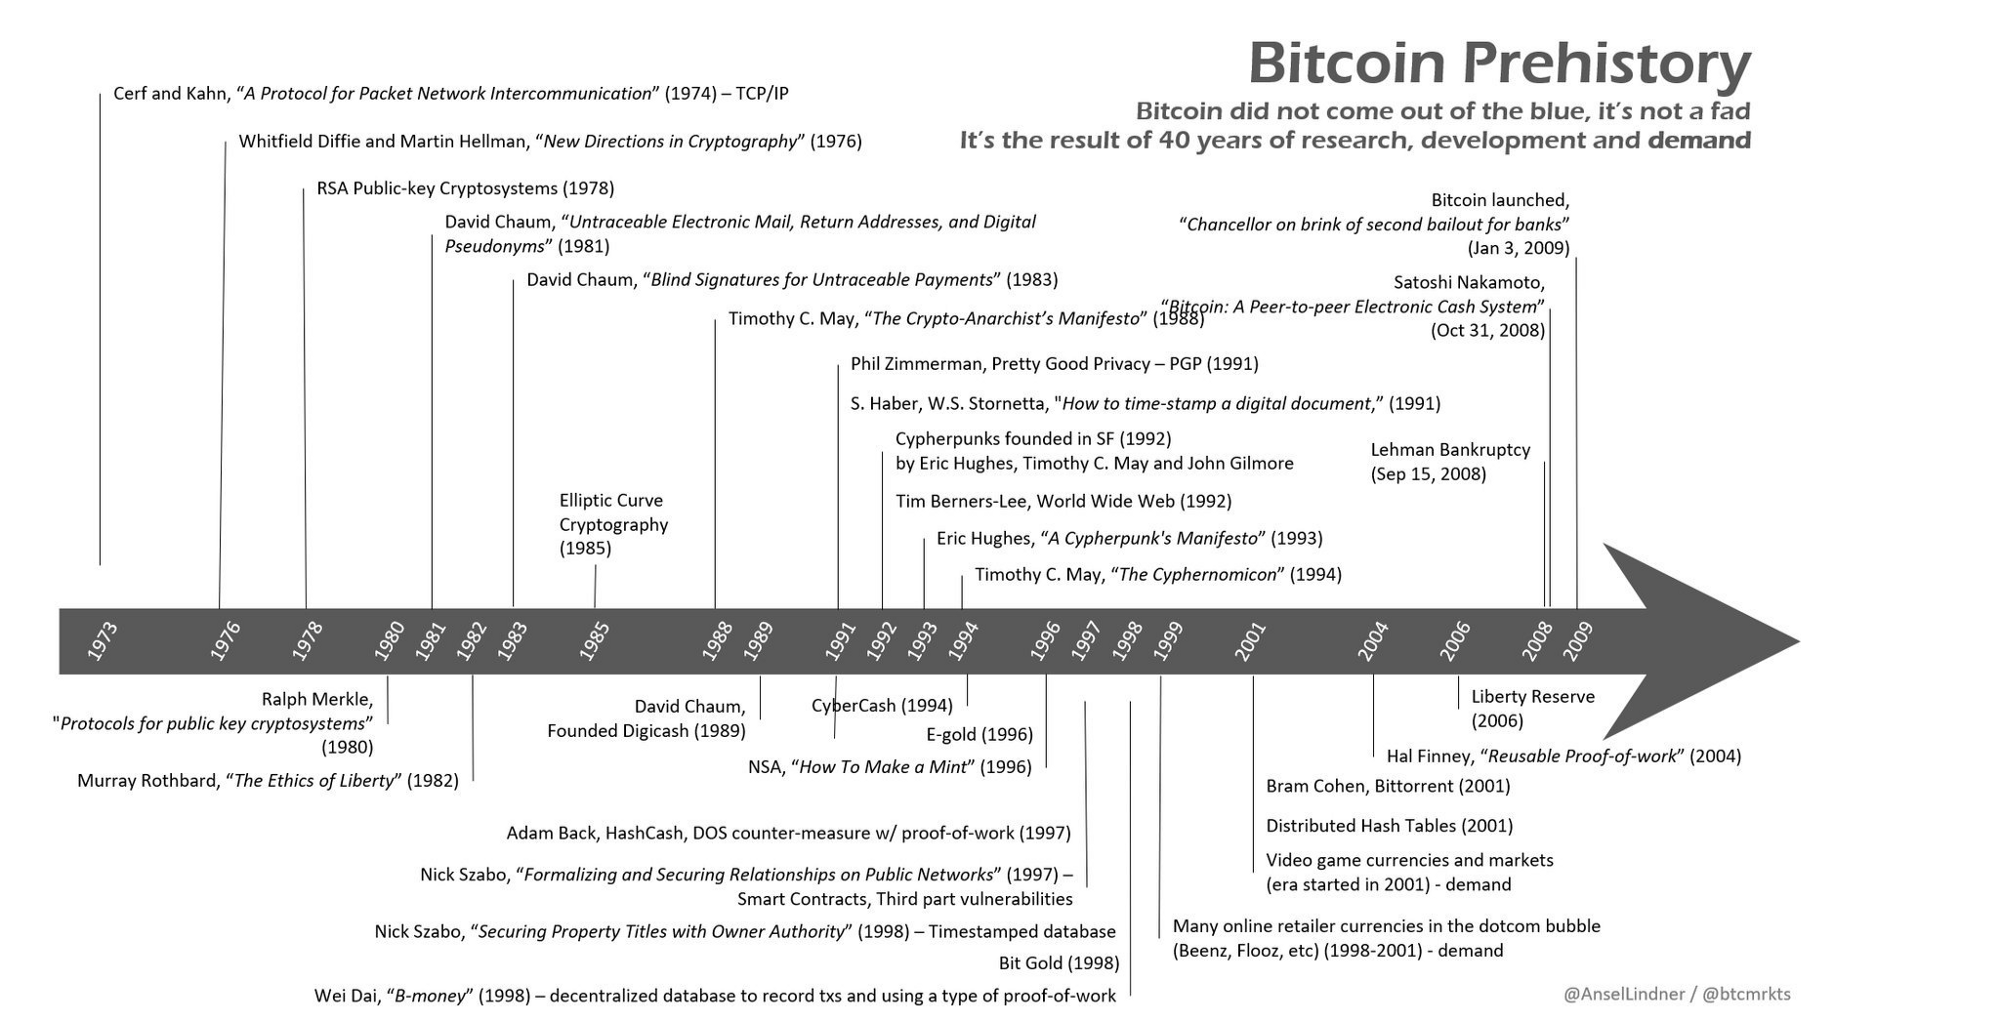 An infographic showing the forty years of research, development and demand underpinning bitcoin's invention